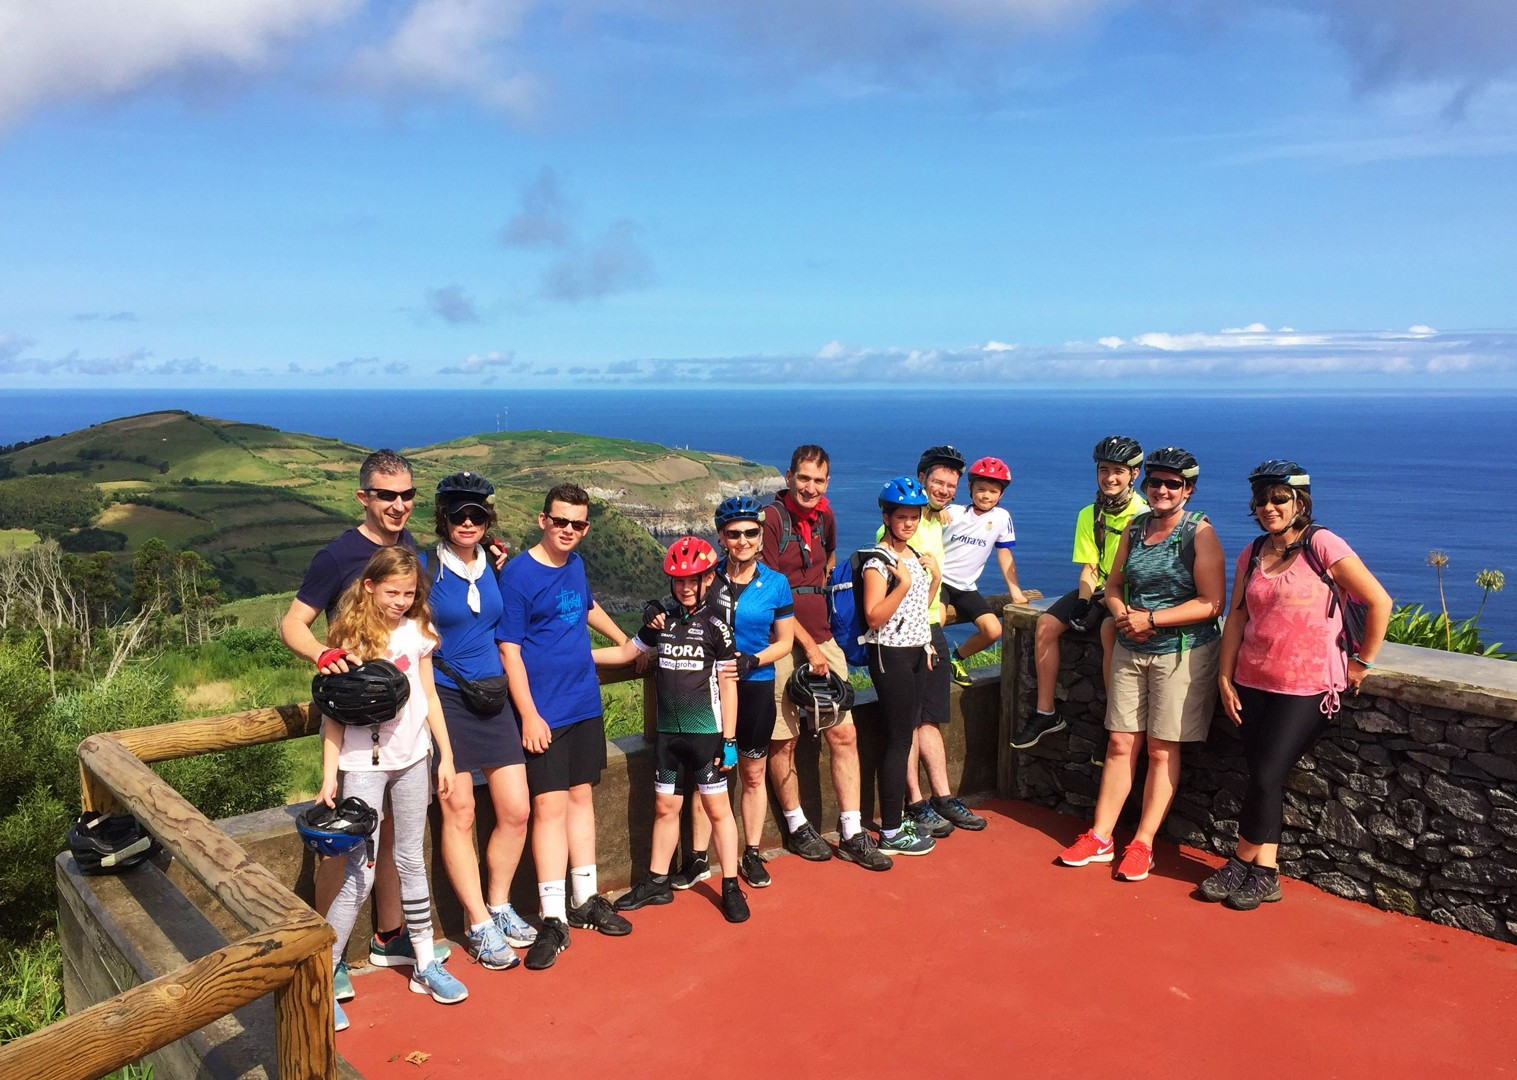 group-guided-family-cycling-holiday-azores-portugal.jpg - The Azores - Island Discoverer - Family Cycling